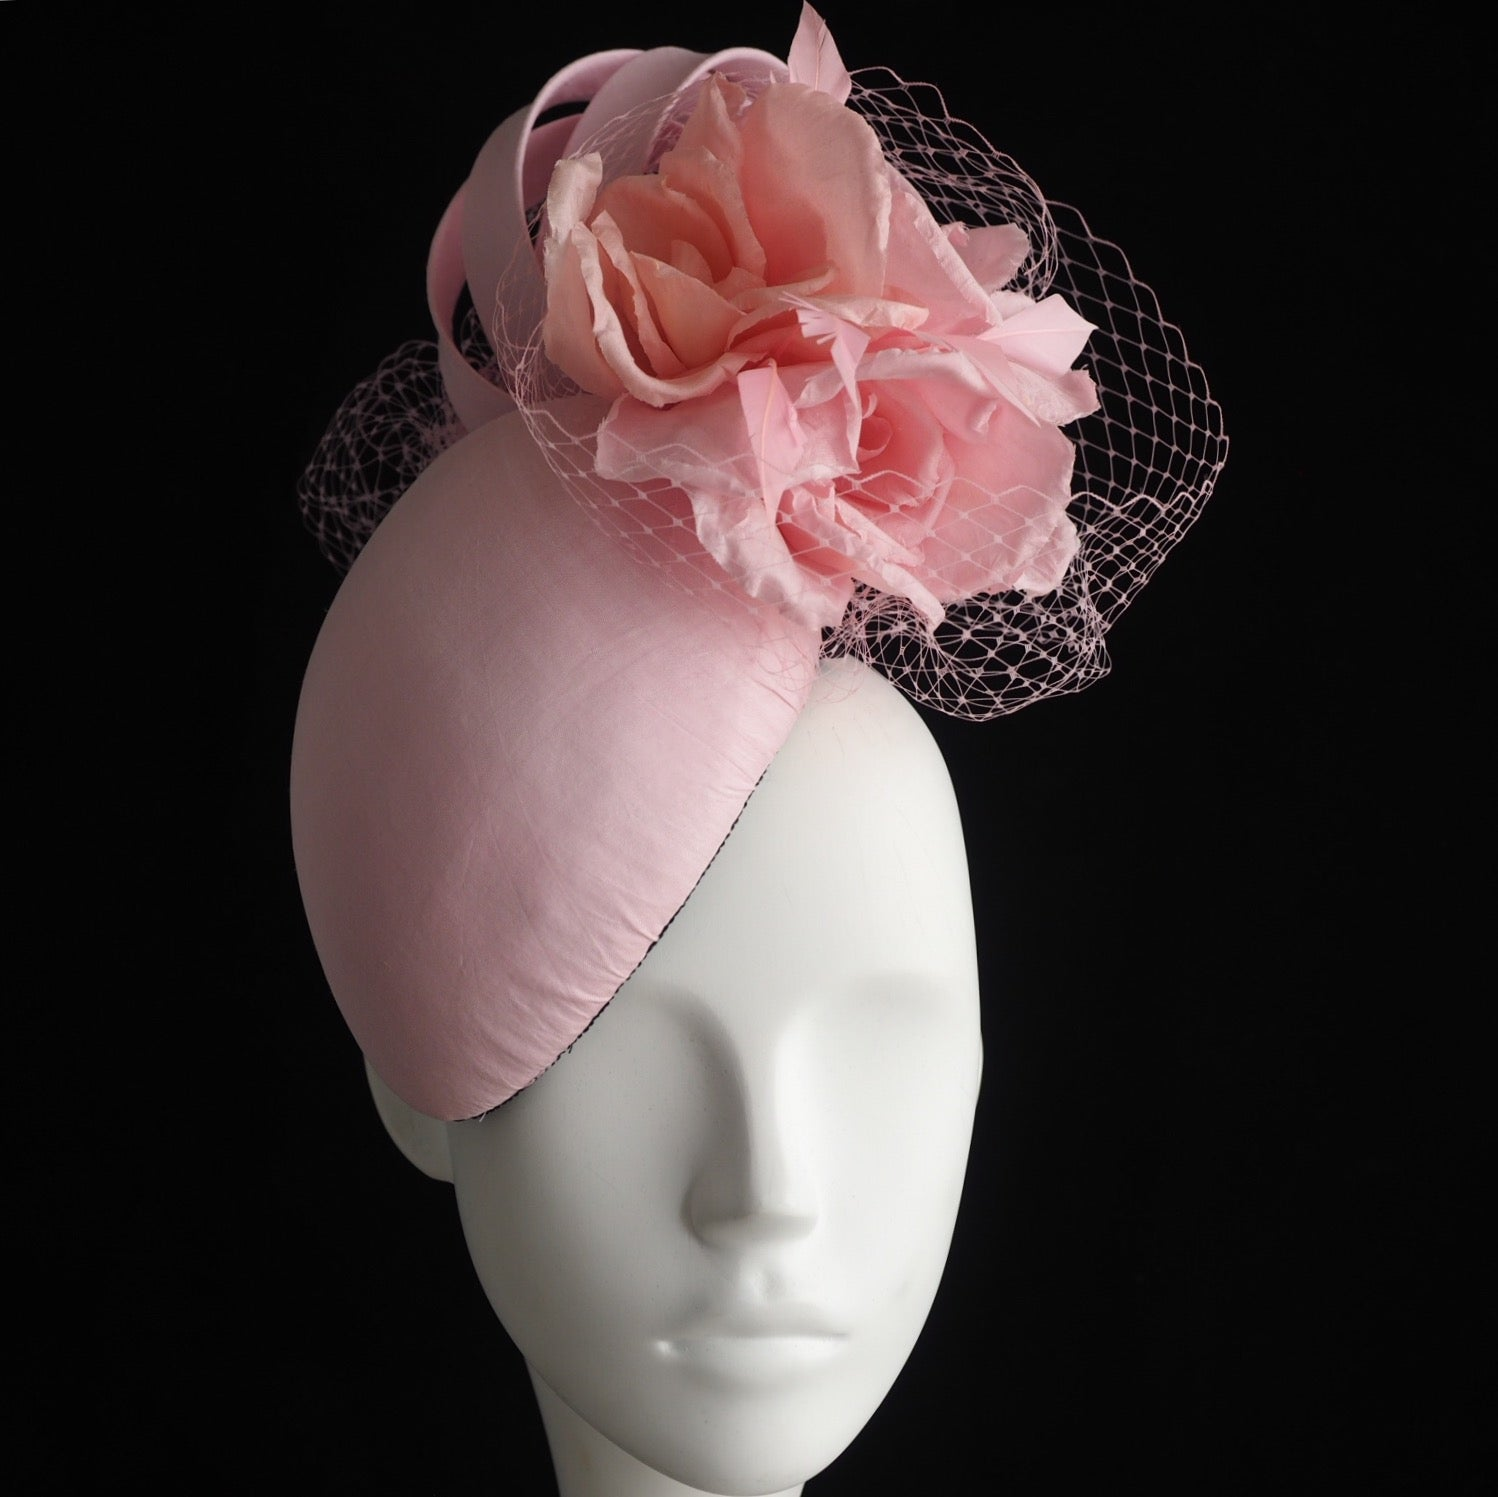 Diana  - Silk headpiece with handcrafted roses - NOELEEN MILLINERY HONG KONG